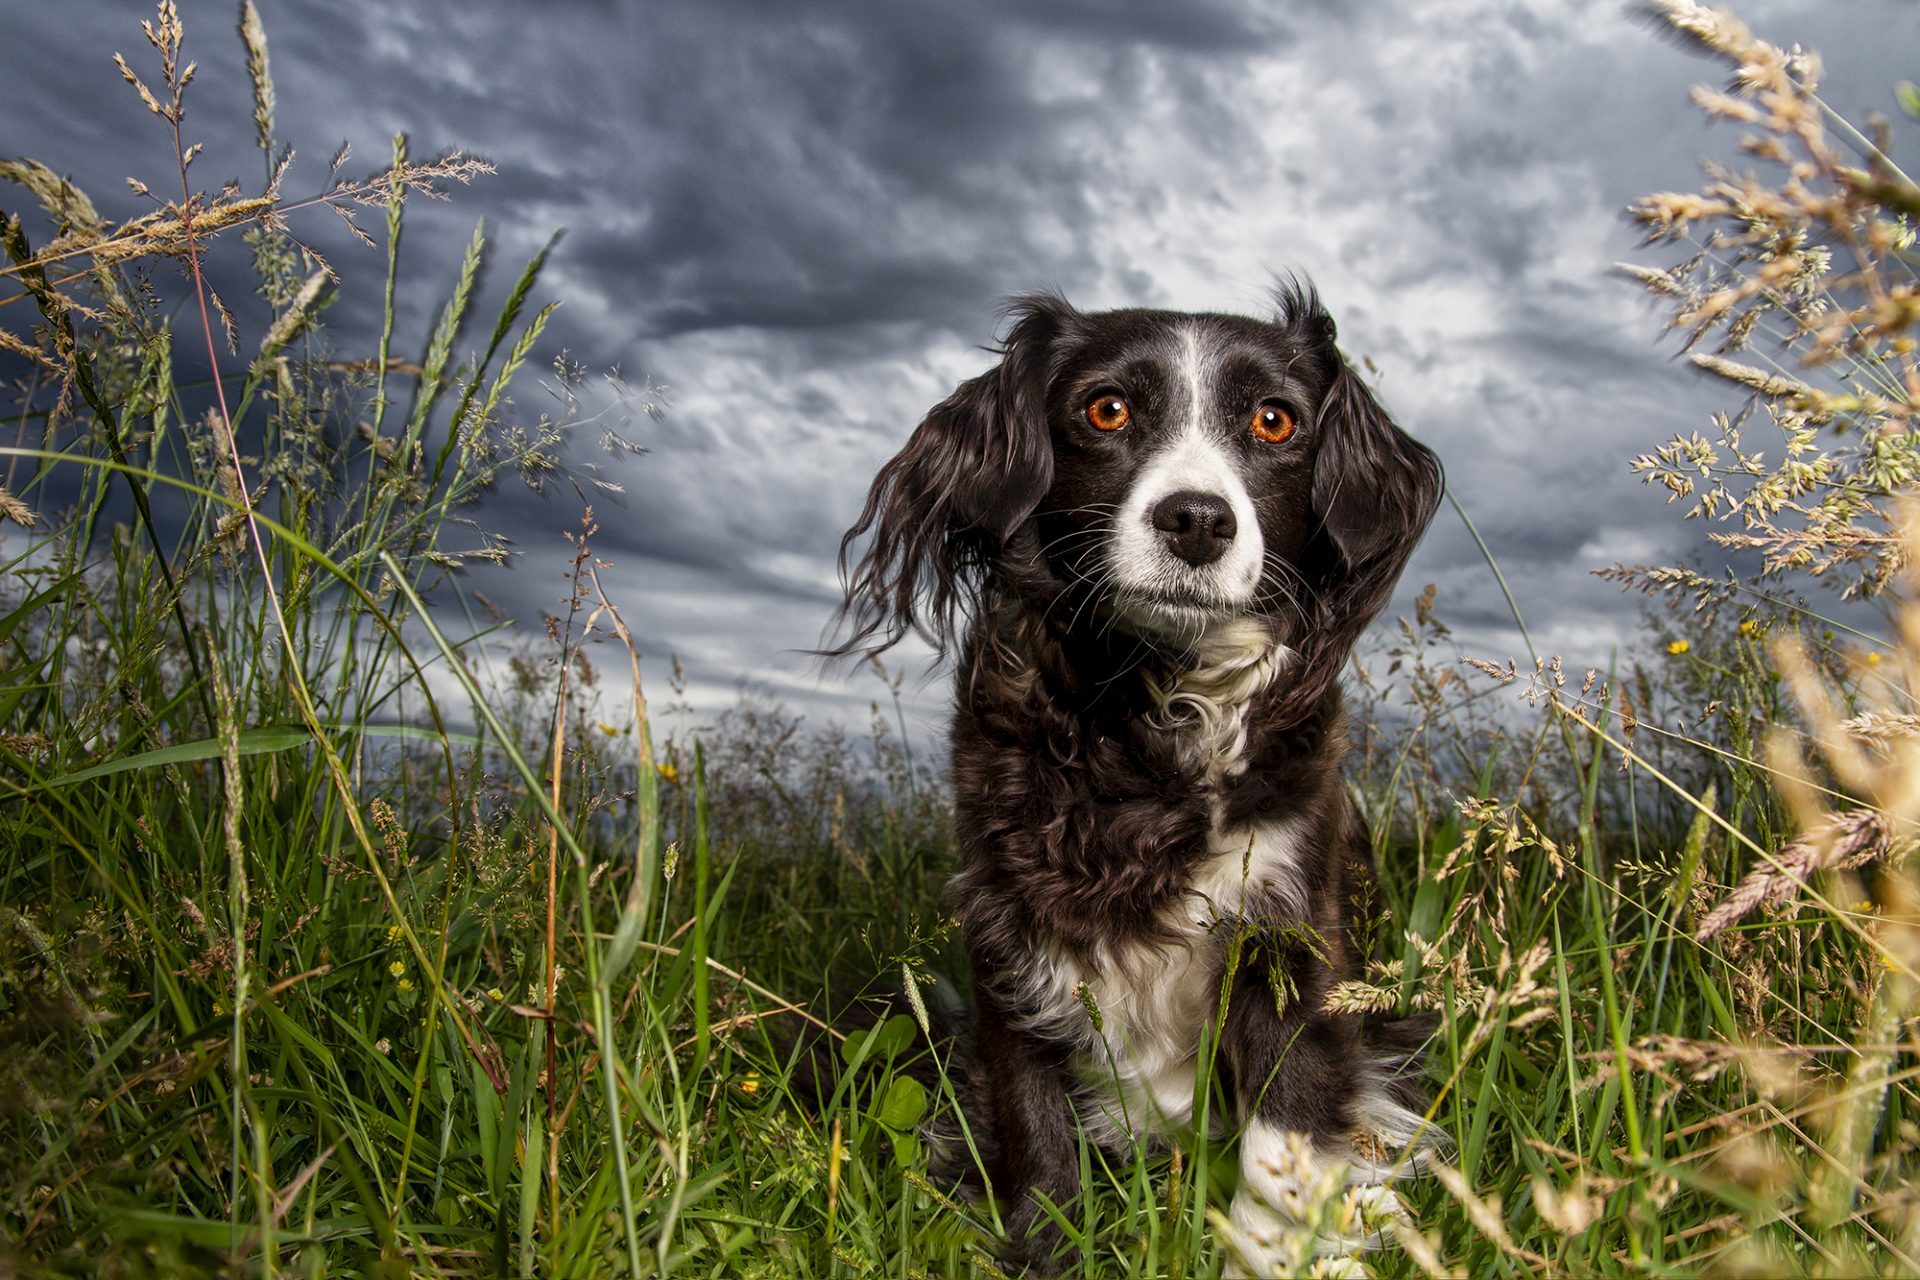 Mixed Breed Dog in dramatic cloudy skies